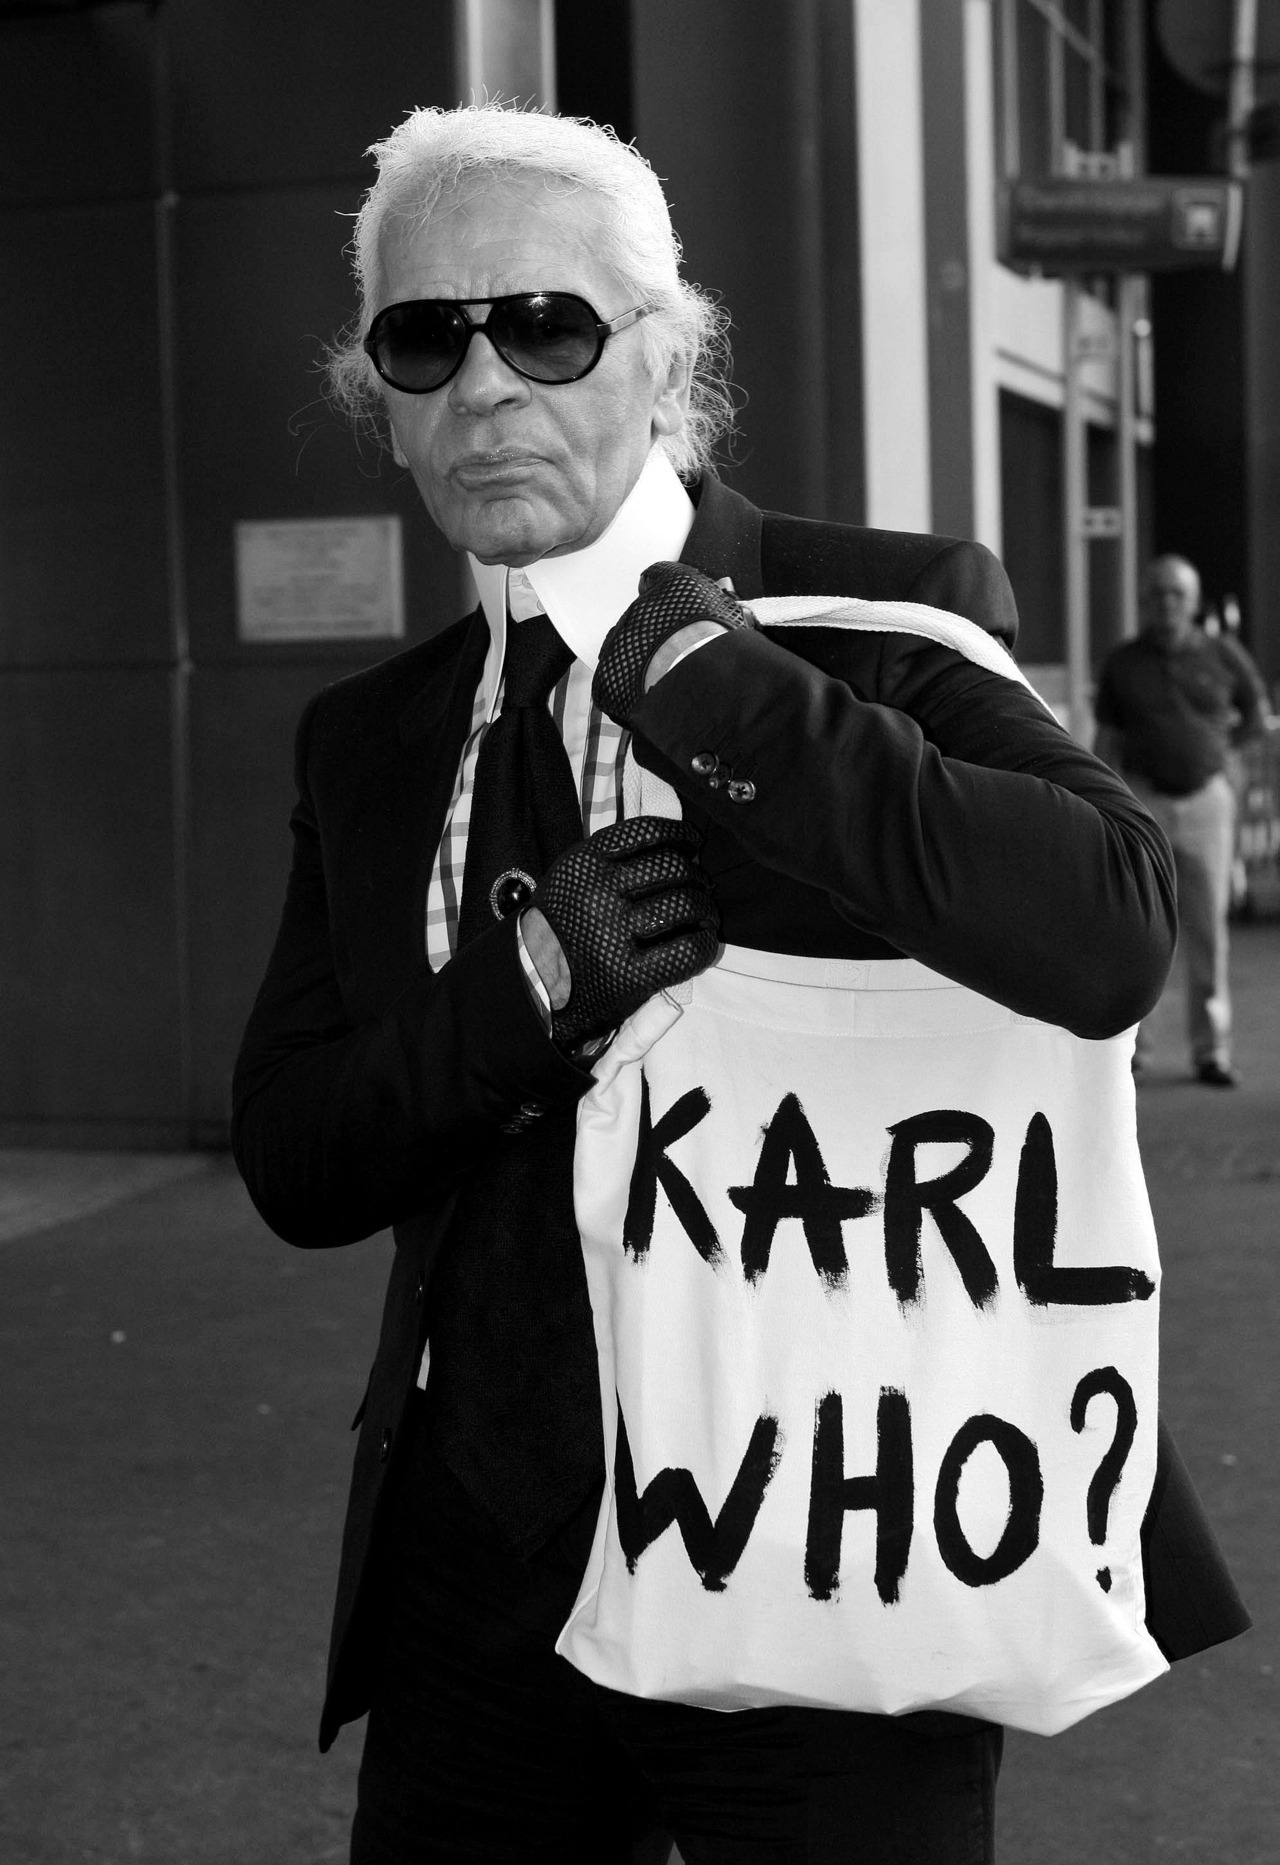 the-louvre:  Who the fuck is Karl?